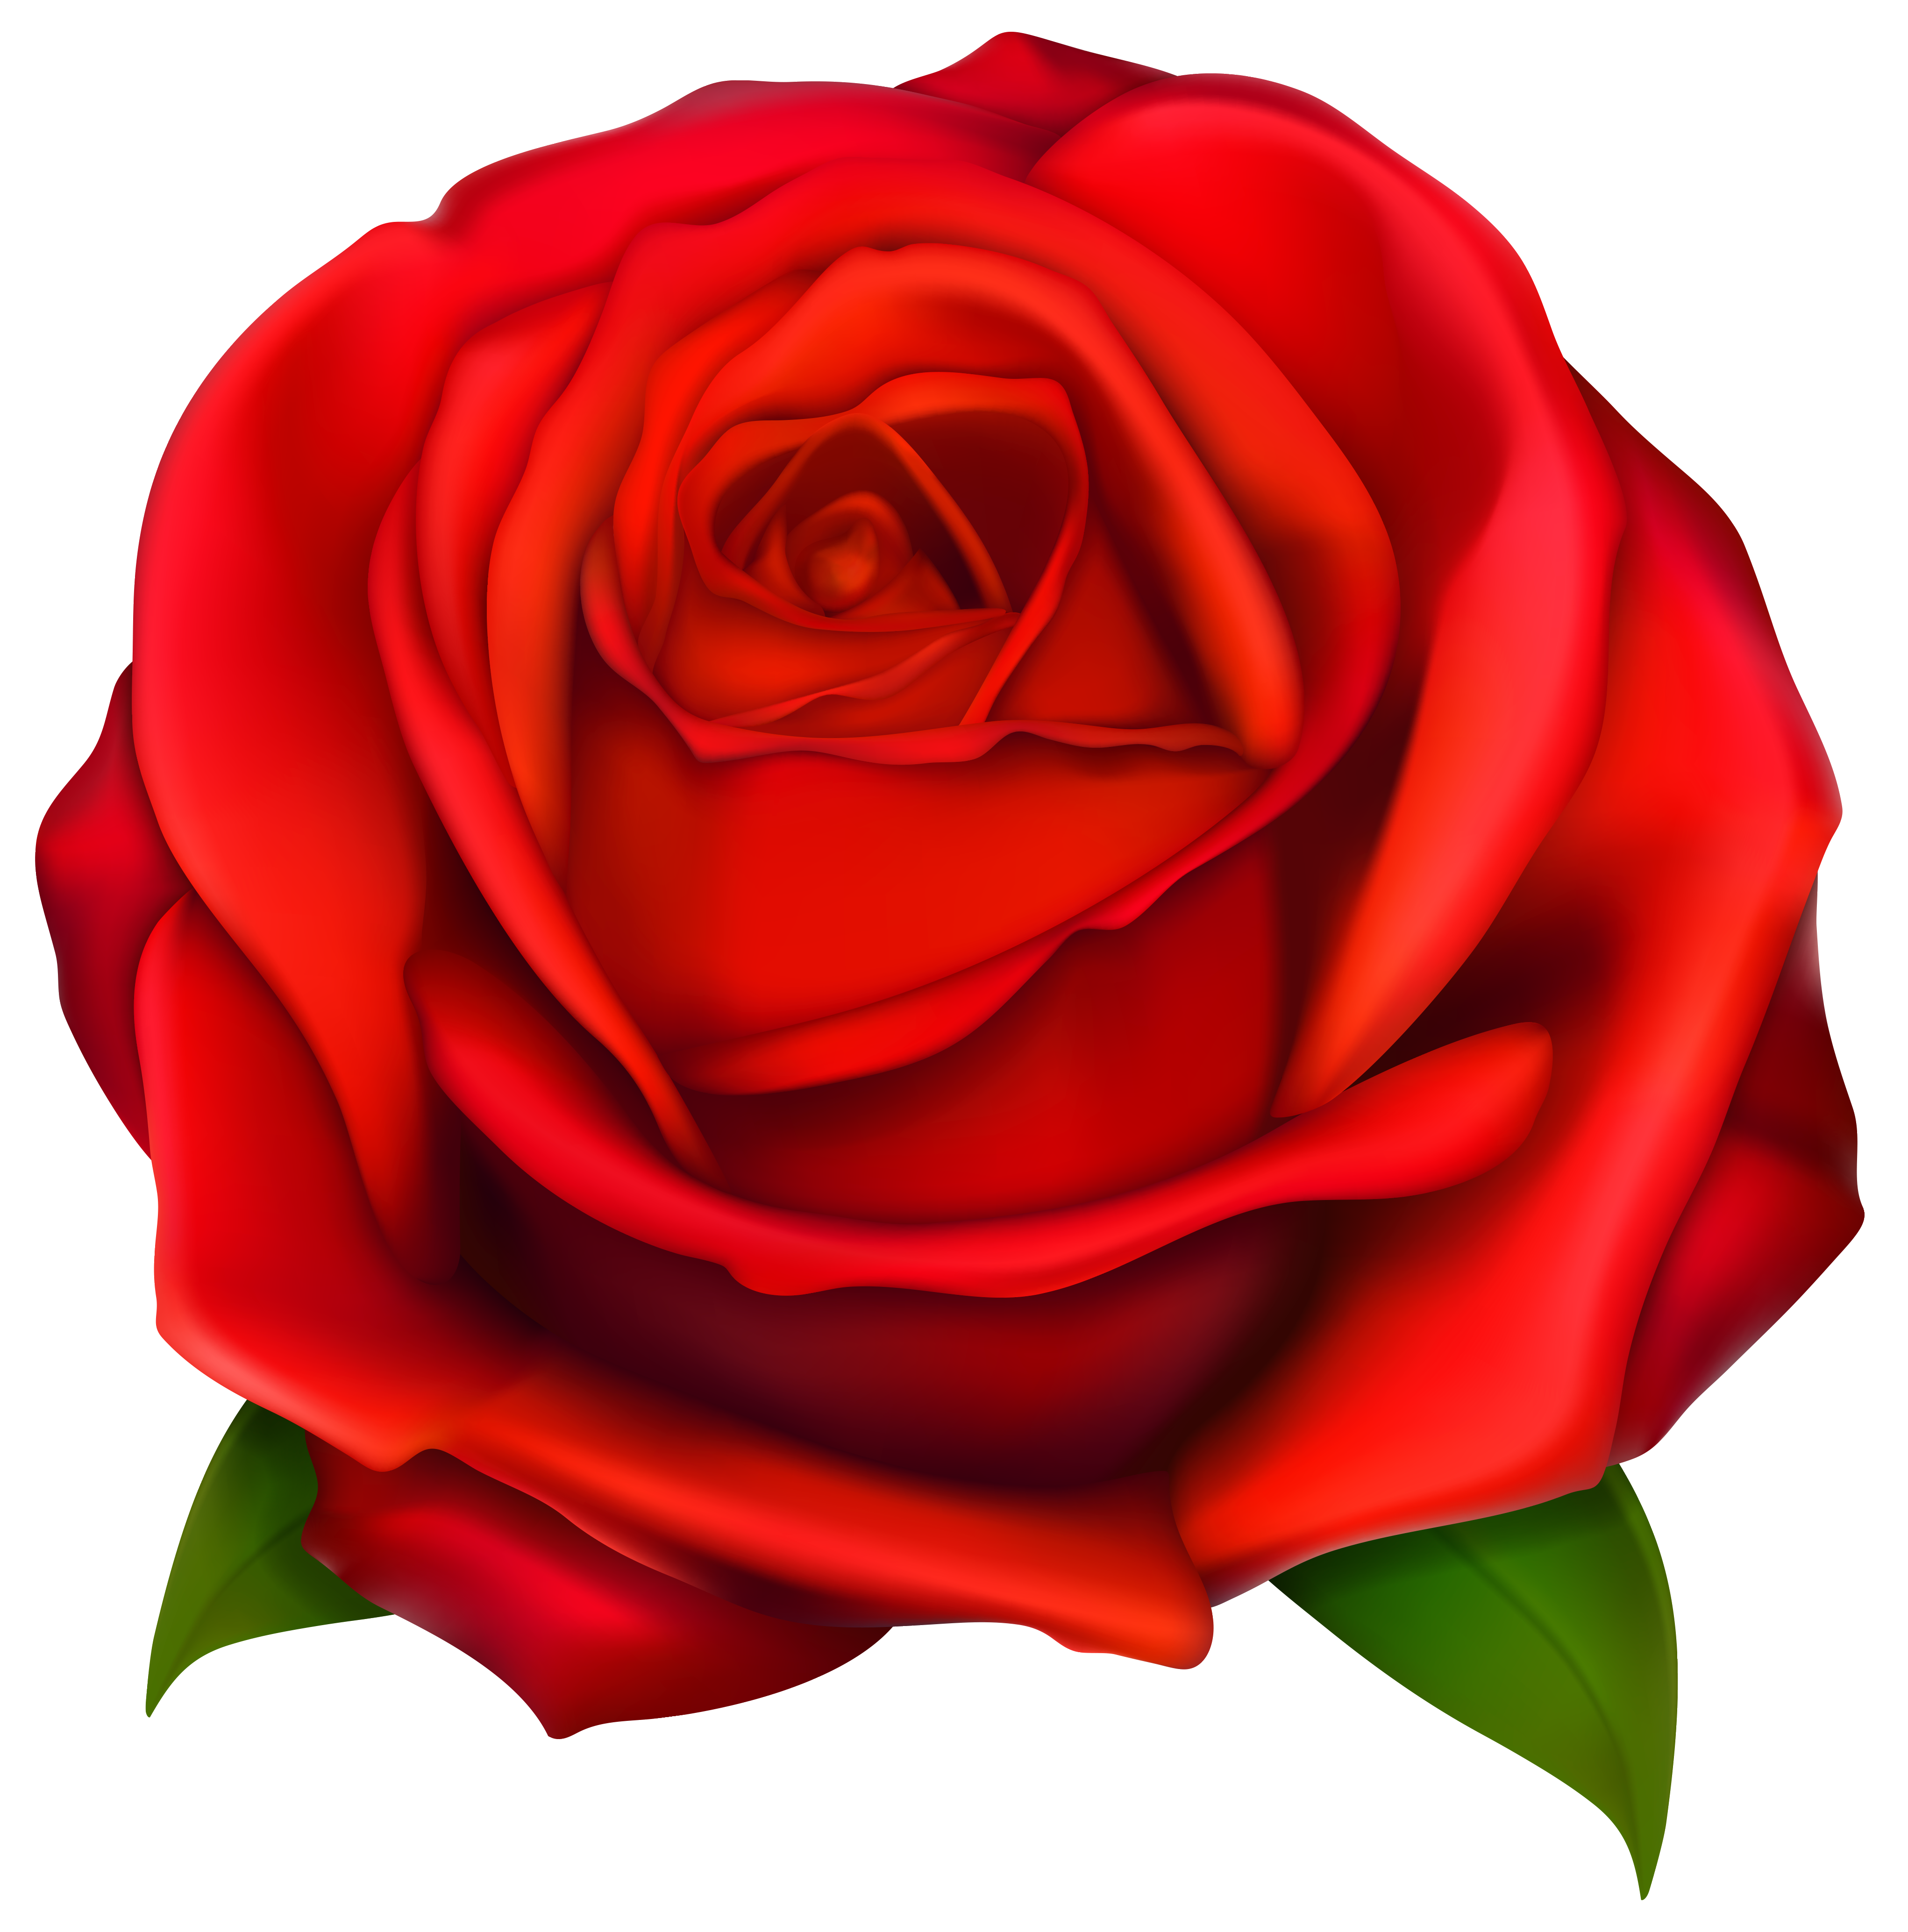 svg freeuse library Rose flower clipart. Image of clip art